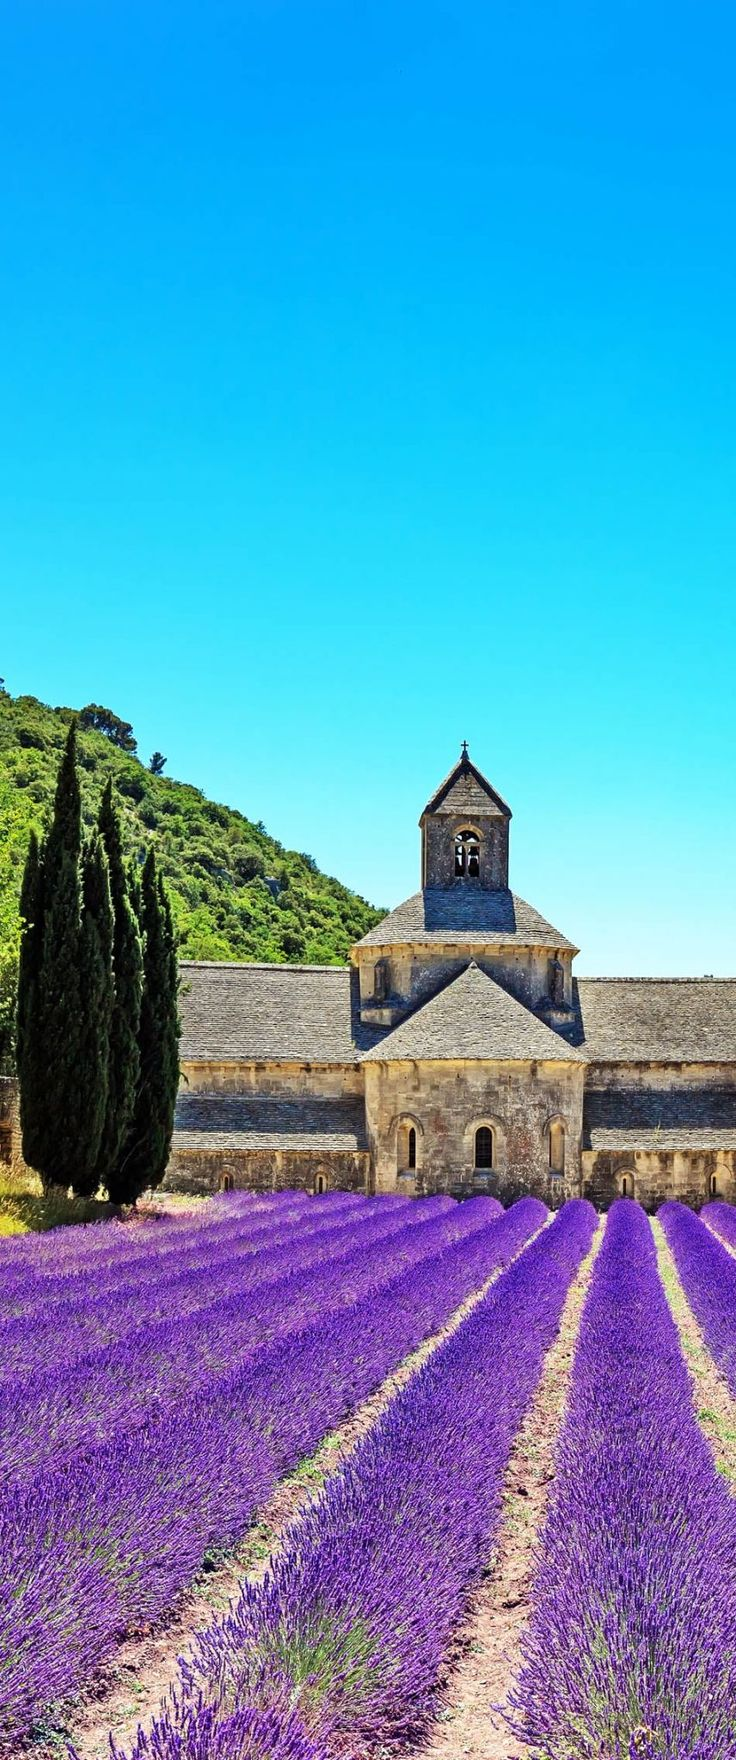 Abbey of Senanque and blooming rows lavender flowers. Gordes, Luberon, Vaucluse, Provence, France, Europe. | 13 Amazing Photos of Lavender Fields that will Rock your World